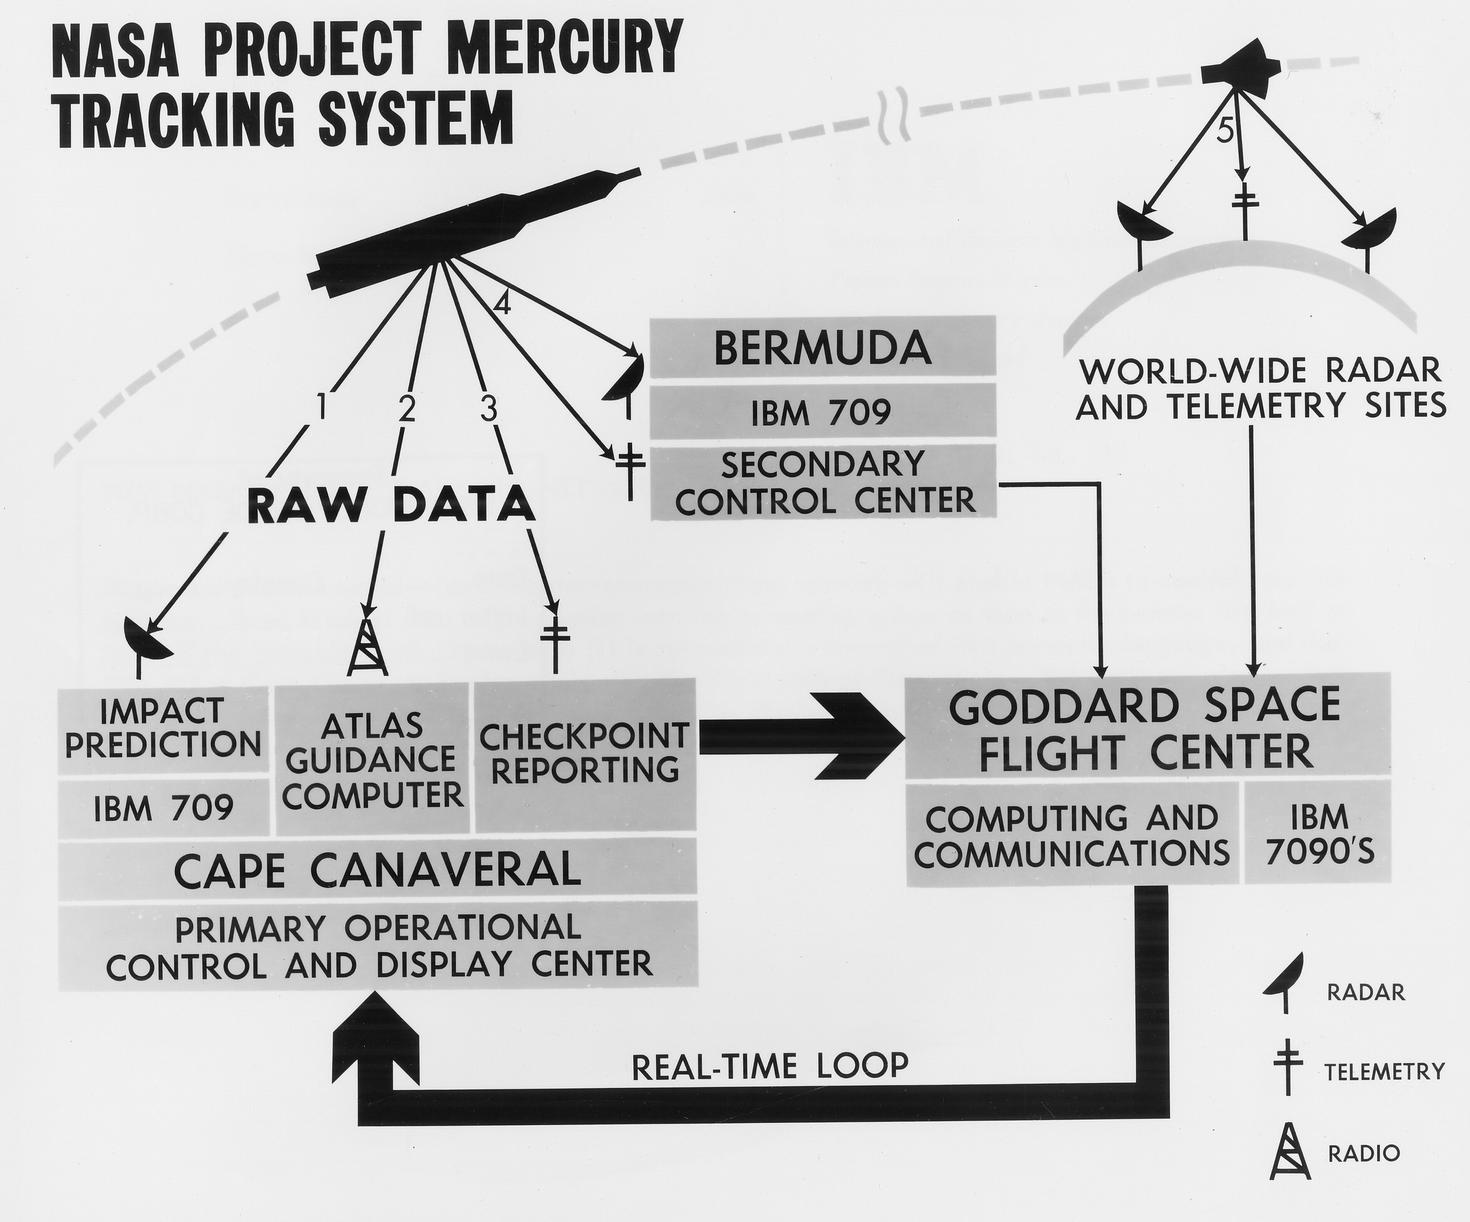 50 Years Of Manned Space Flight An Interview With A Lead Engineer. Nasa Project Mercury Tracking System 1961. Mercury. Nasa Mercury Diagram At Scoala.co